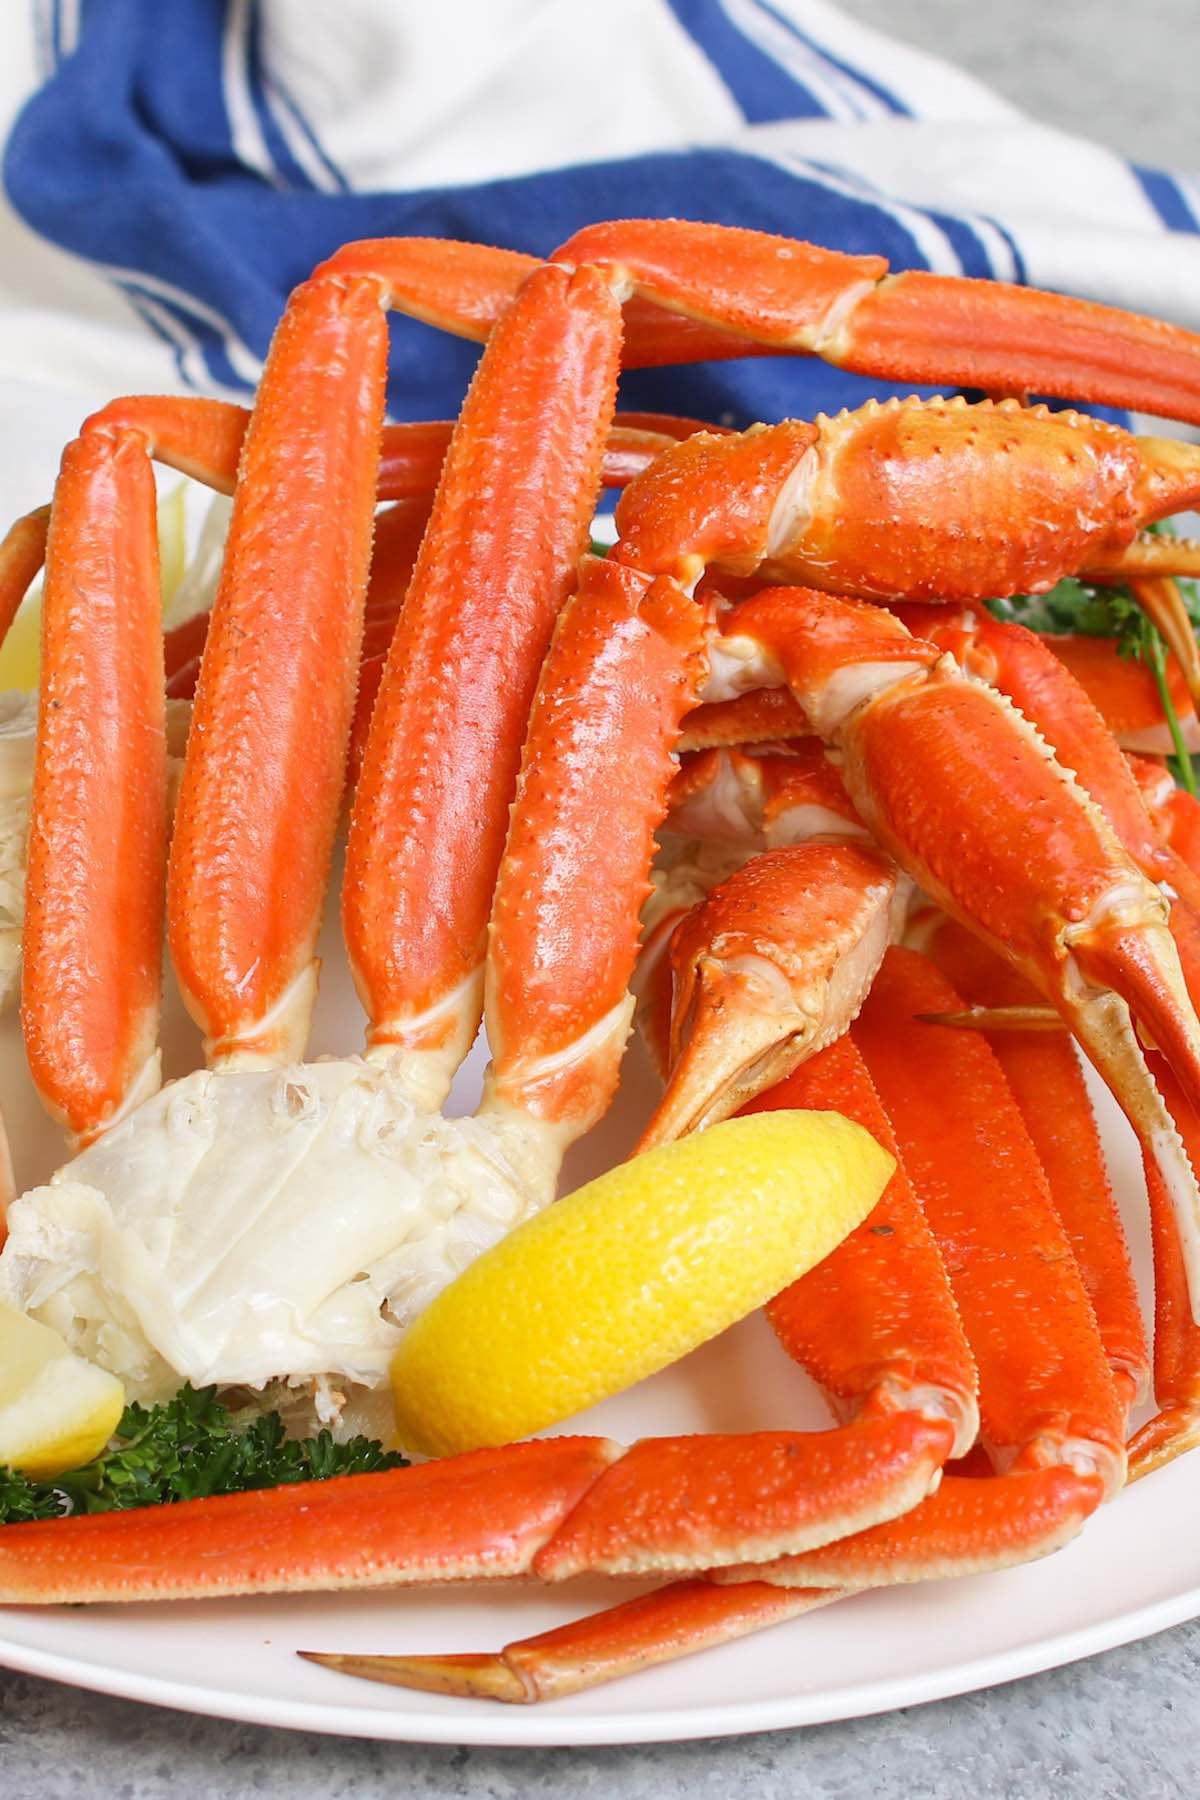 Learn how to cook crab legs for a delicious meal bursting with seafood flavors! Whether you're using frozen king crab or snow crab legs,  follow this essential step-by-step guide on how to easily cook them in just 15 minutes by steaming, boiling, baking or grilling.